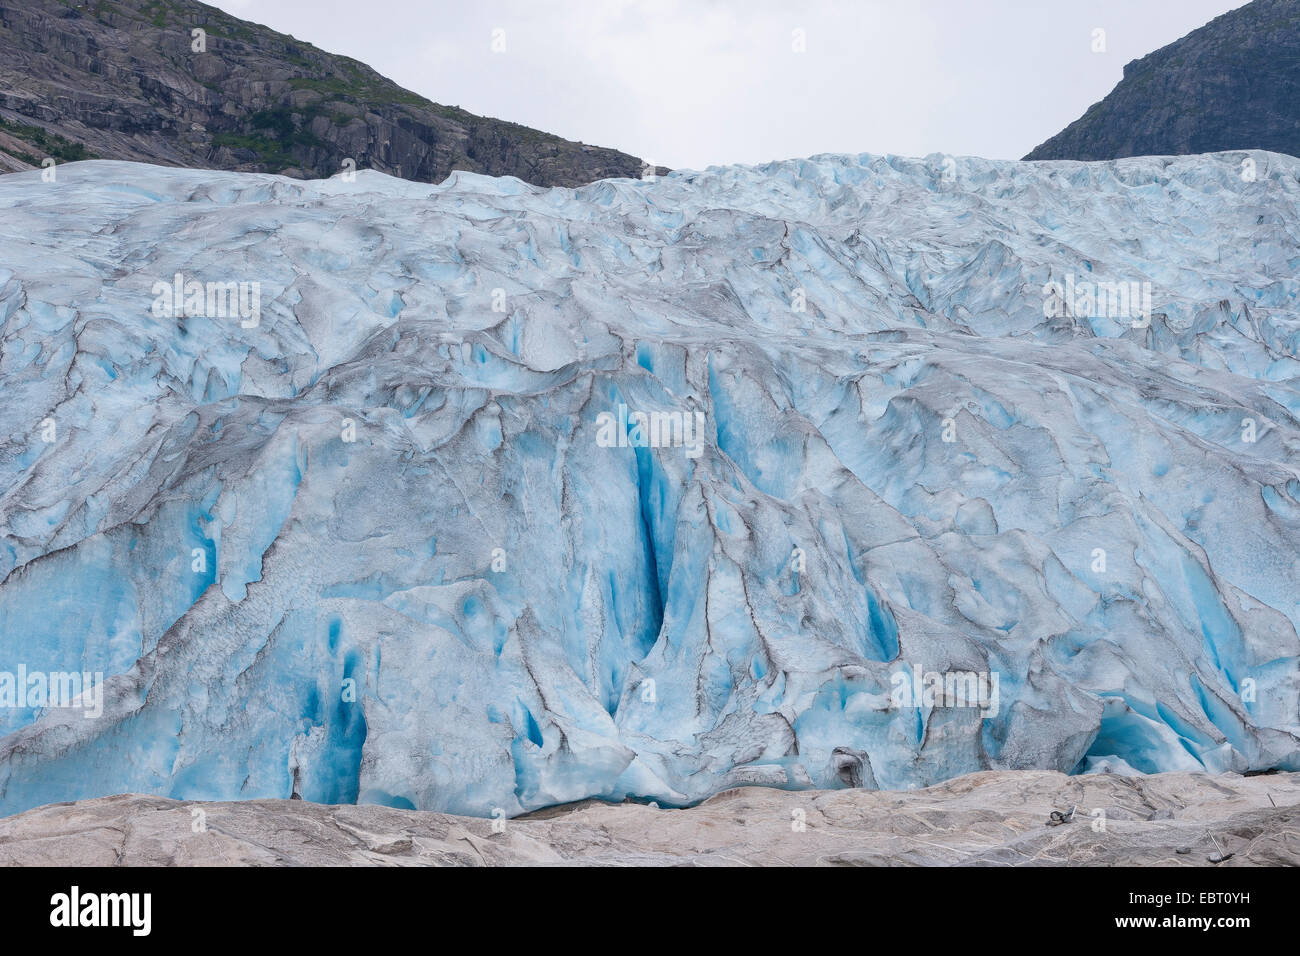 glacier tongue of Nigardsbreen, Norway, Jostedalsbreen National Park - Stock Image